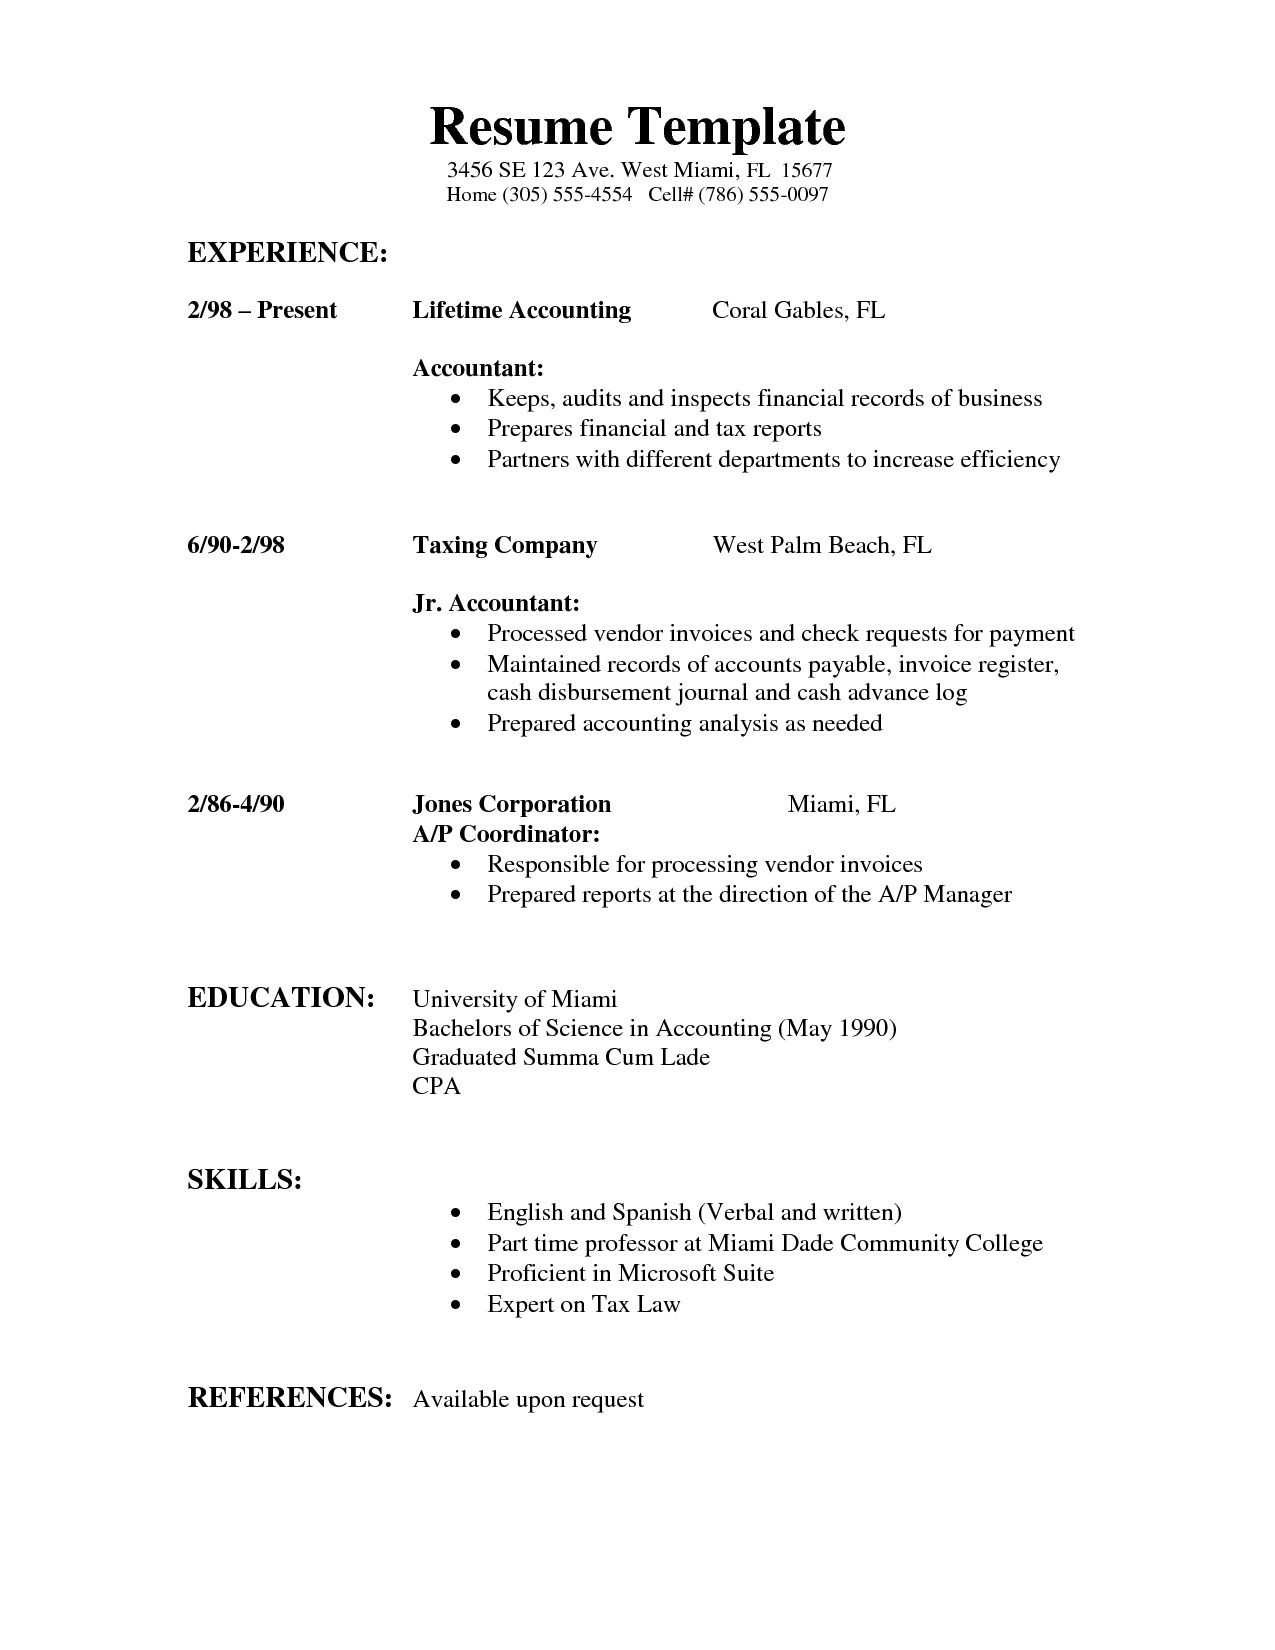 Simple Resume Template Download Simple resume template